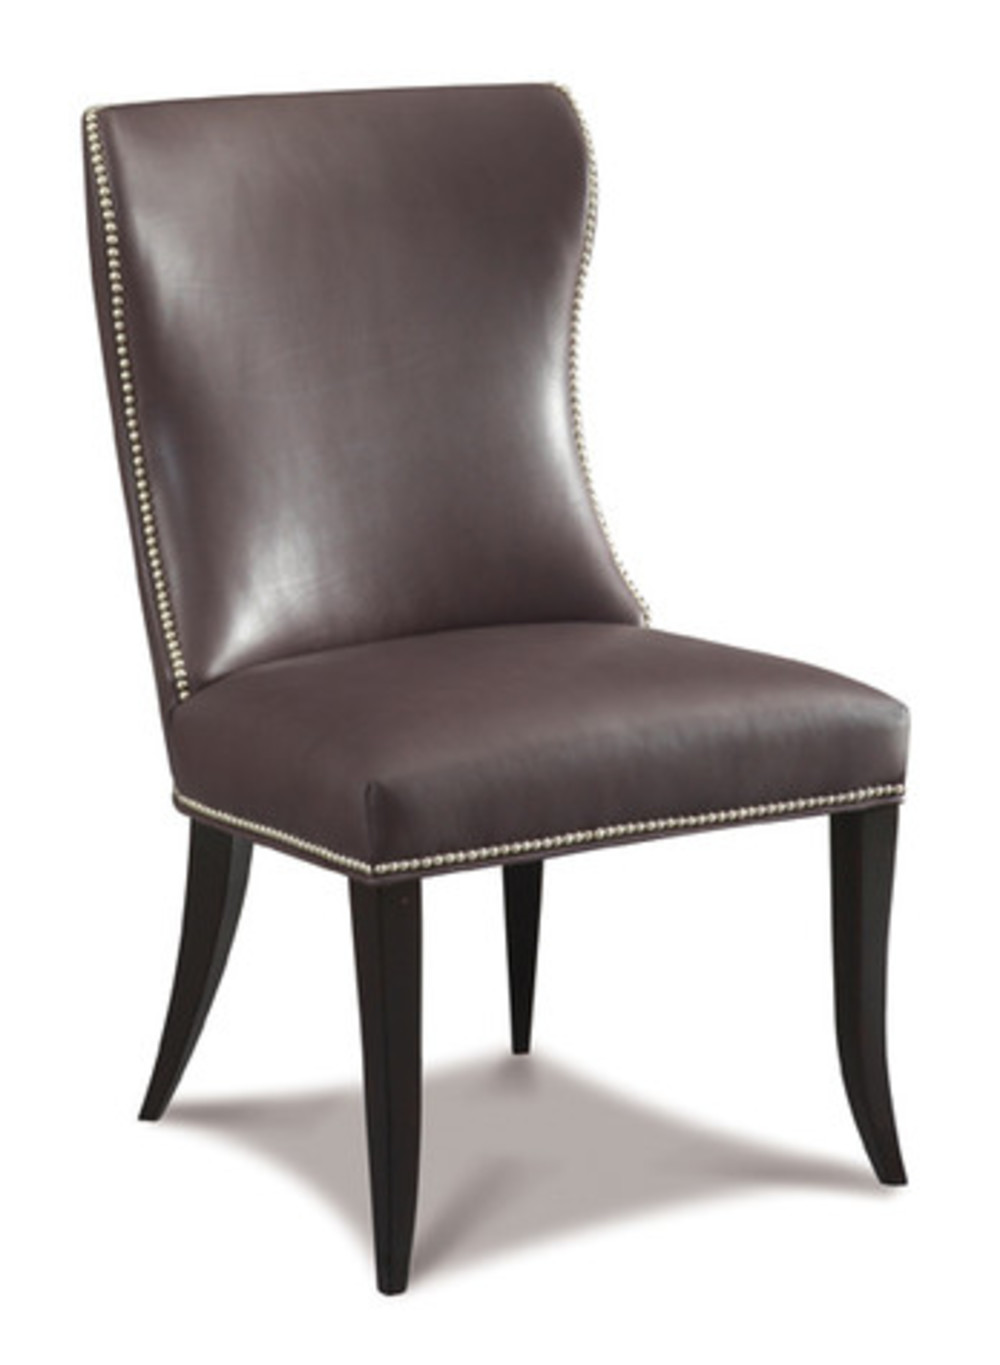 Precedent - Cora Dining Side Chair